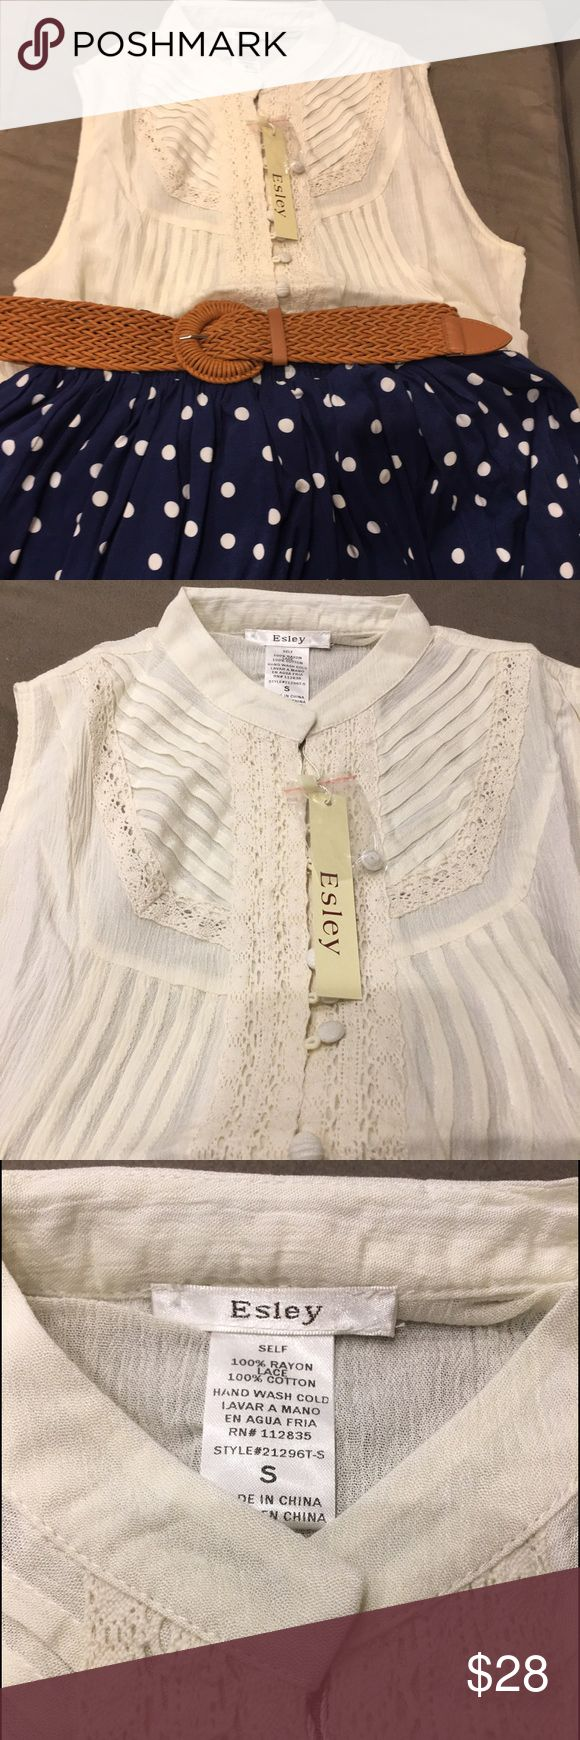 Bnwt cream short sleeve blouse with lace detail Bnwt esley short sleeve cream blouse size small 100 cotton and lace detail is 100 rayon.  Home is smoke and pet free Esley Tops Blouses